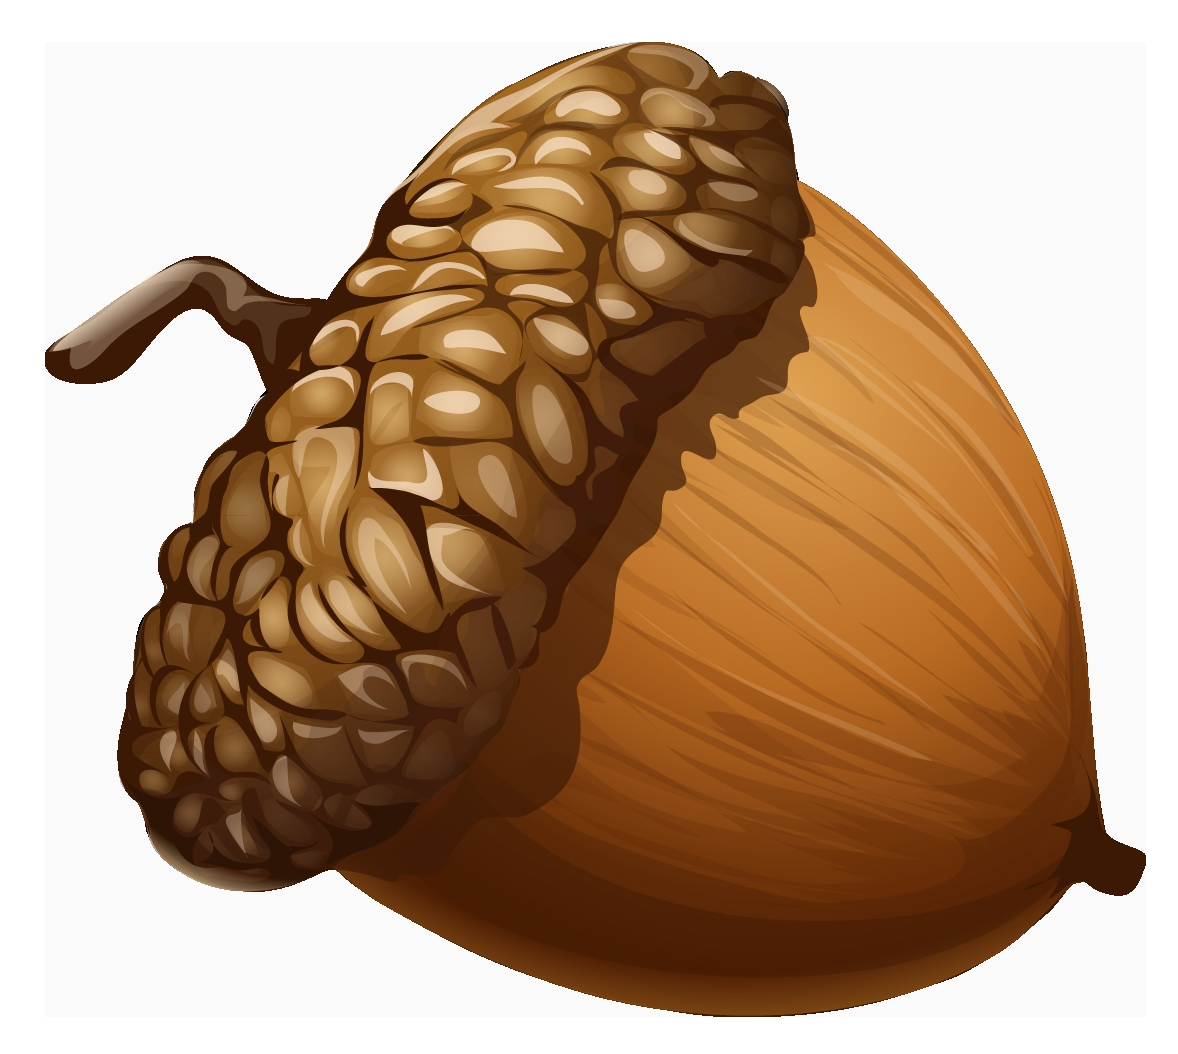 Acorn clipart. Awesome gallery digital collection